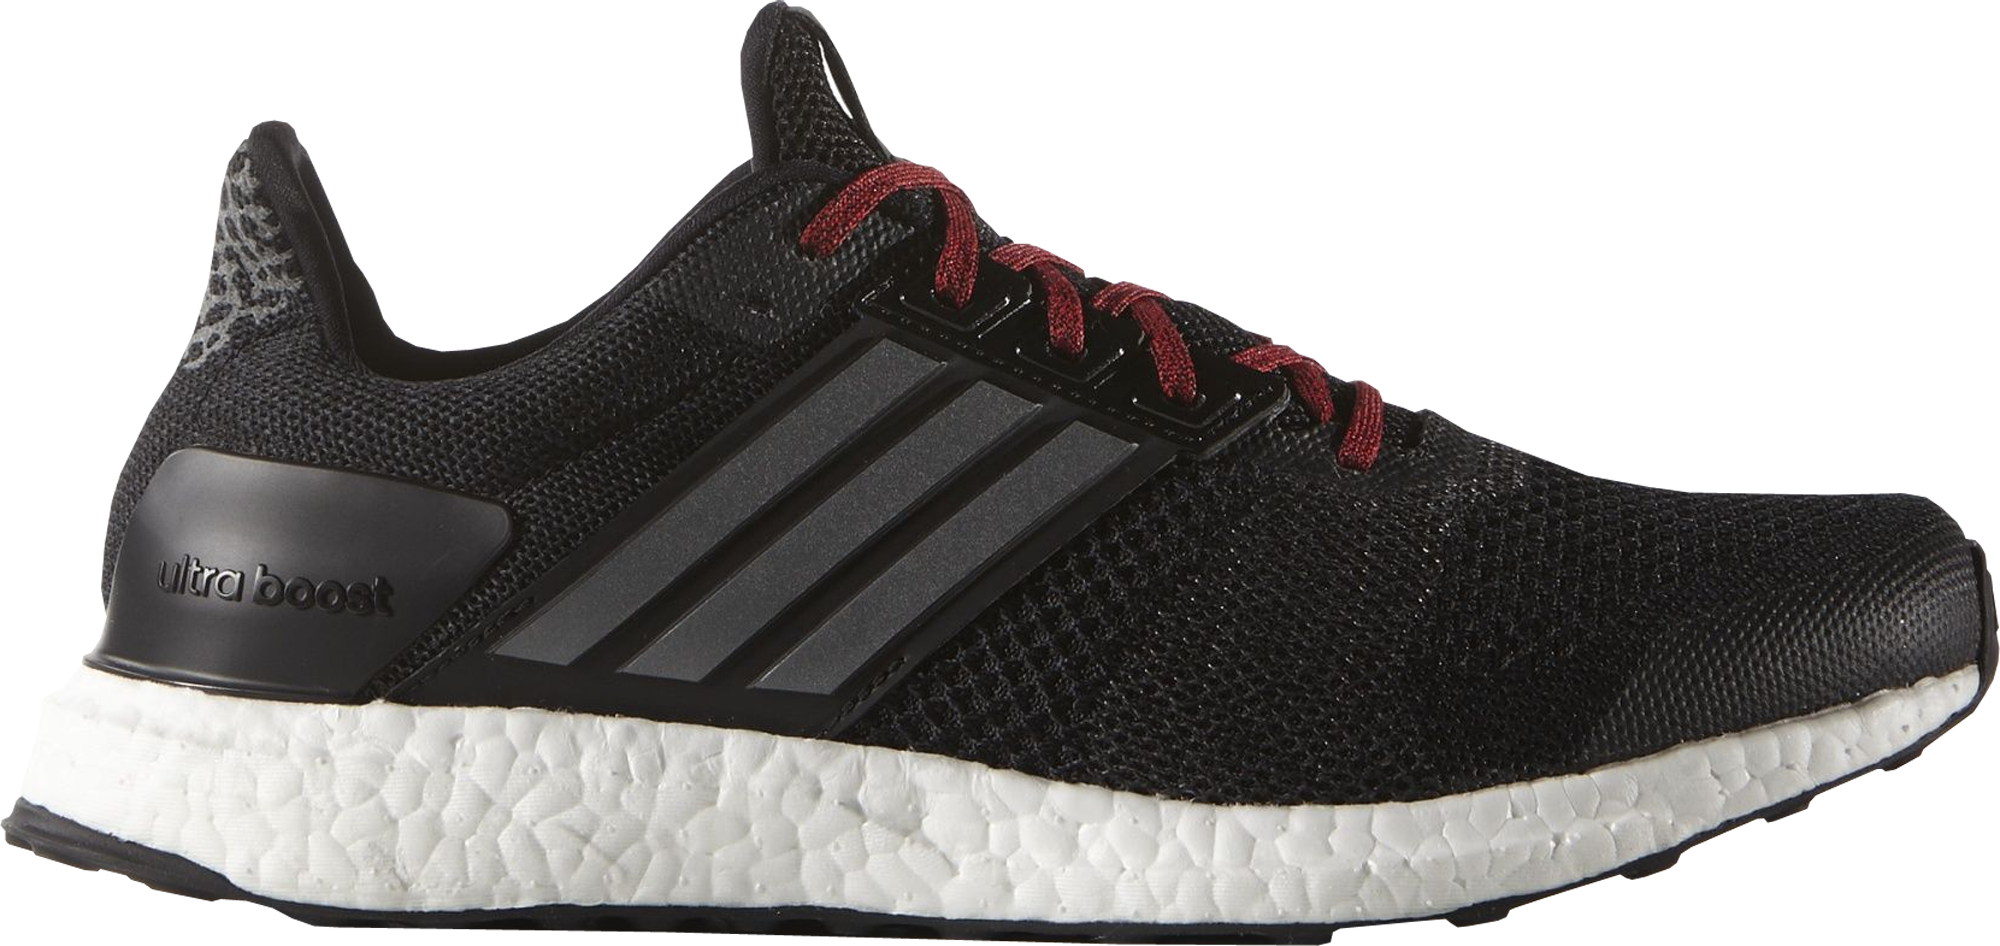 0a49f19ebd2ed4 ... discount code for adidas ultra boost st core black bd7bf c75c4